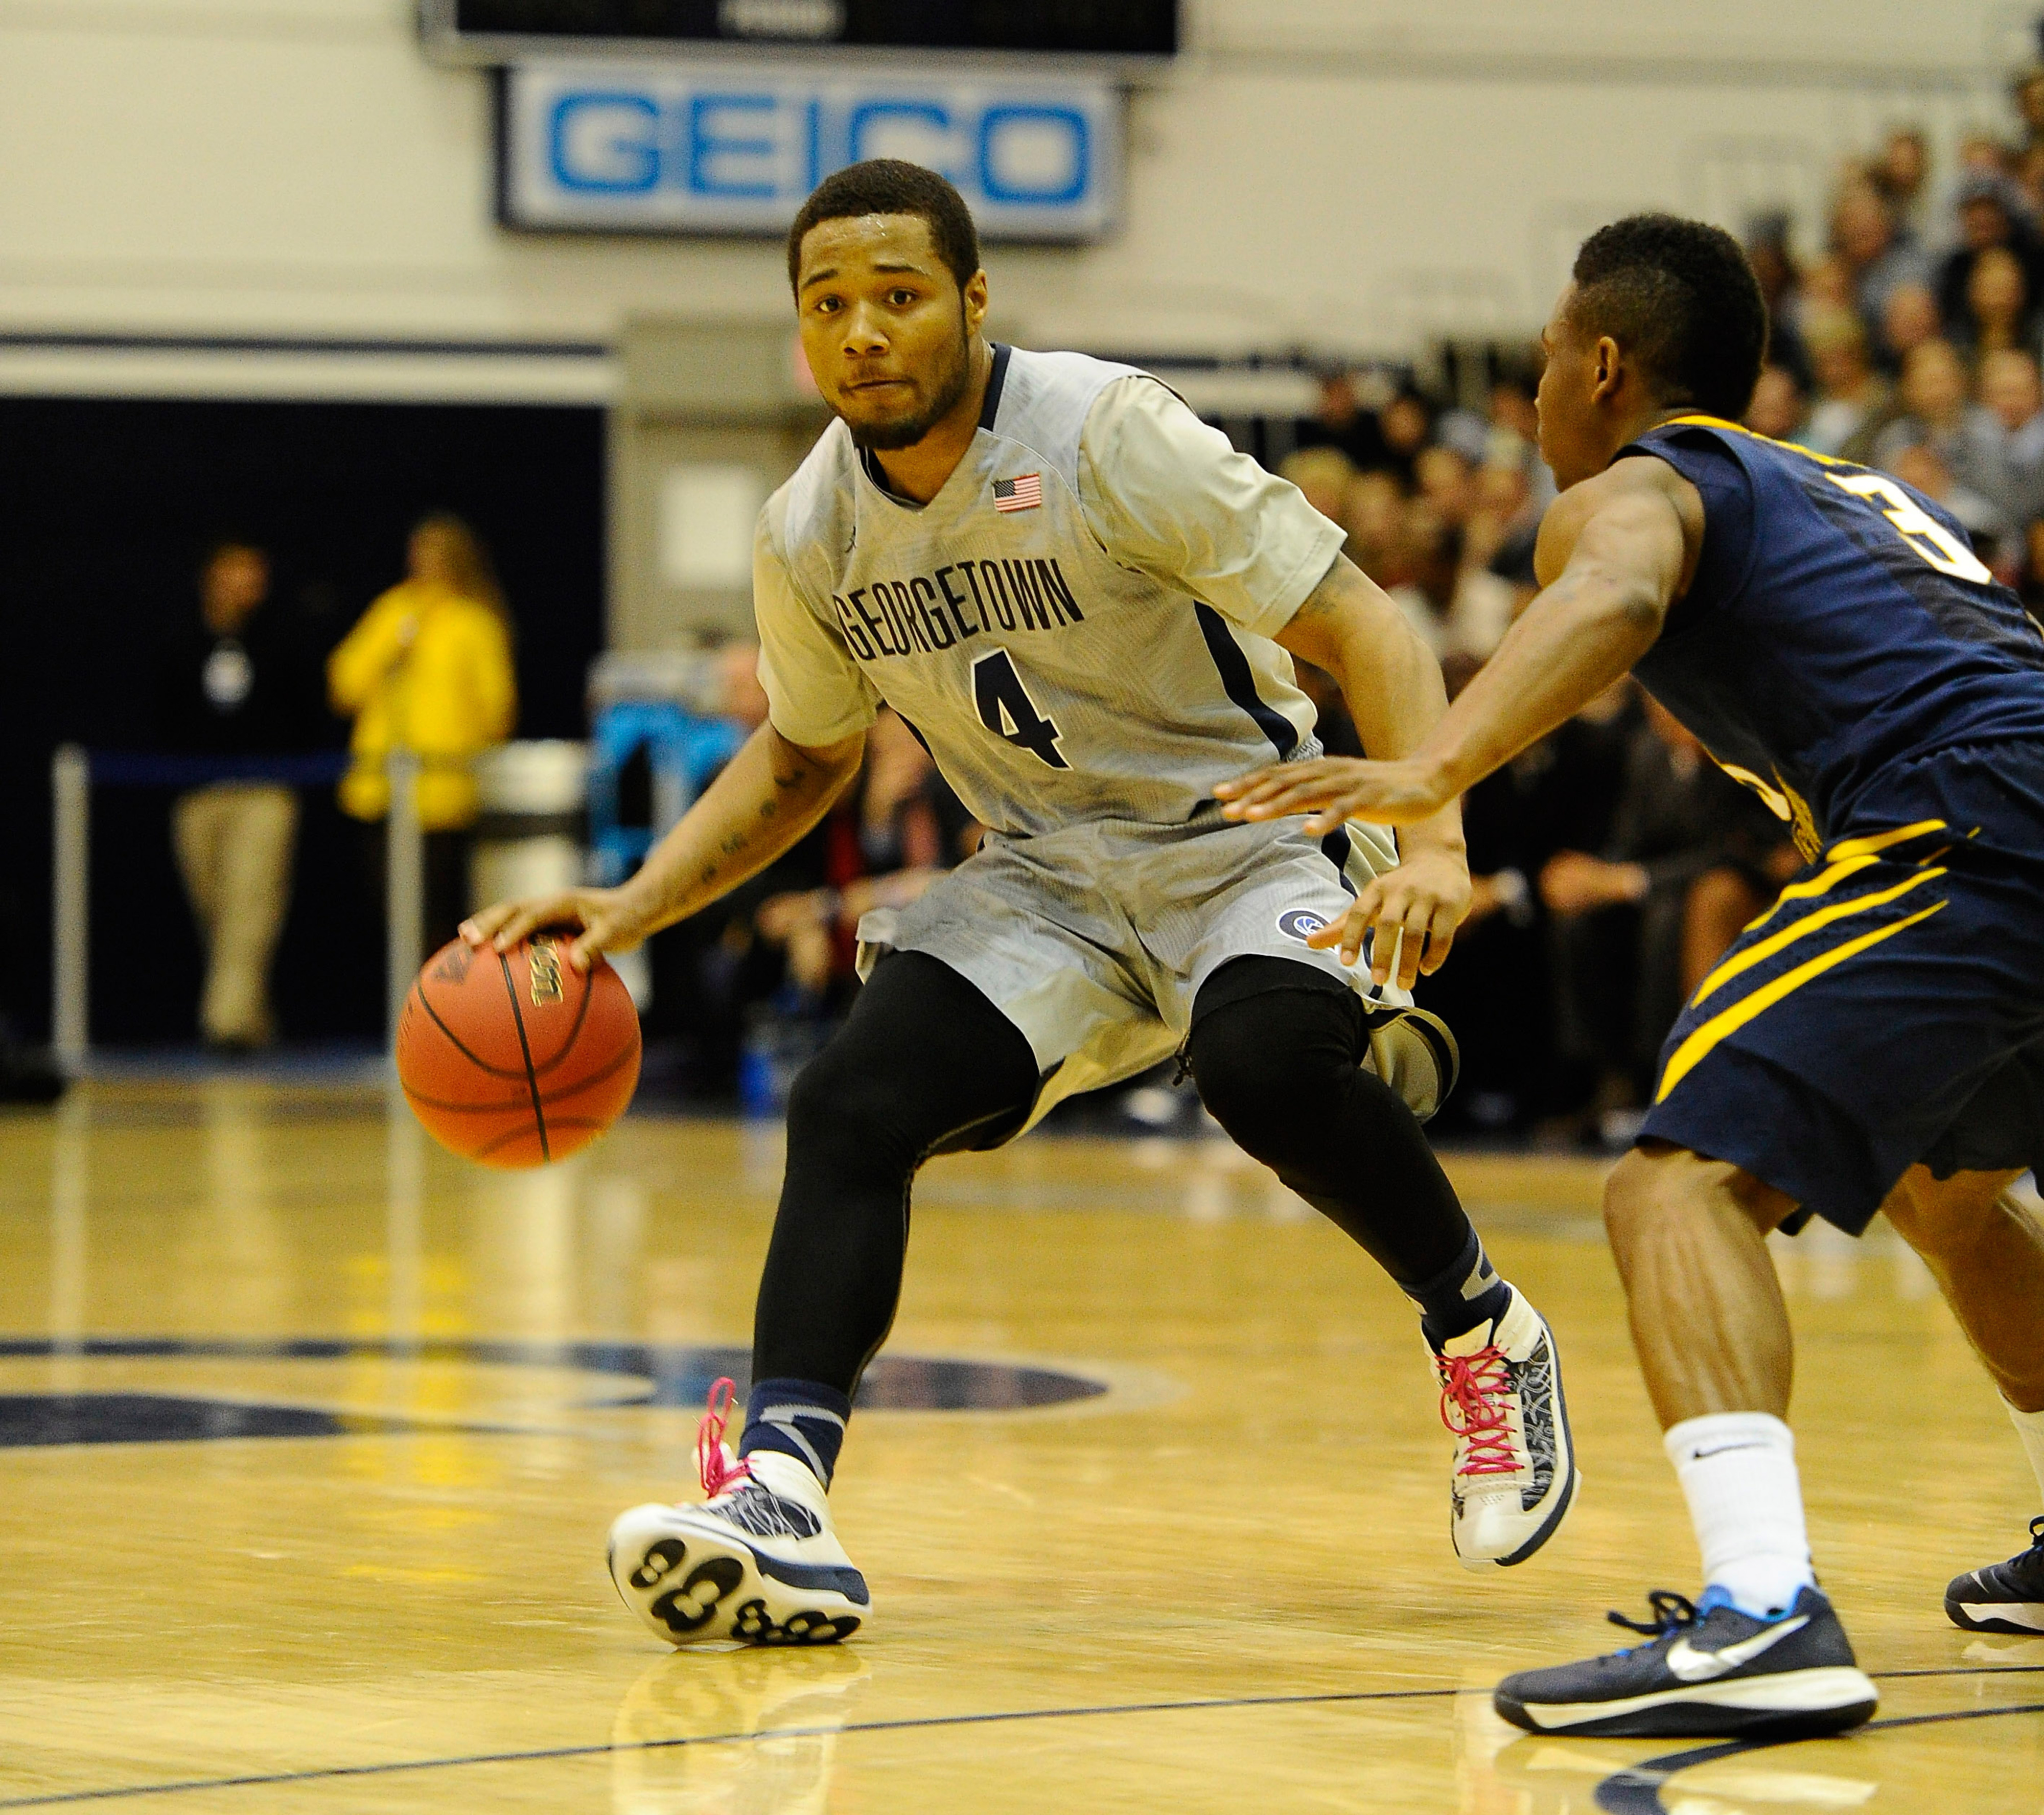 Can a dude who plays in his PJs really be the conference's best player?